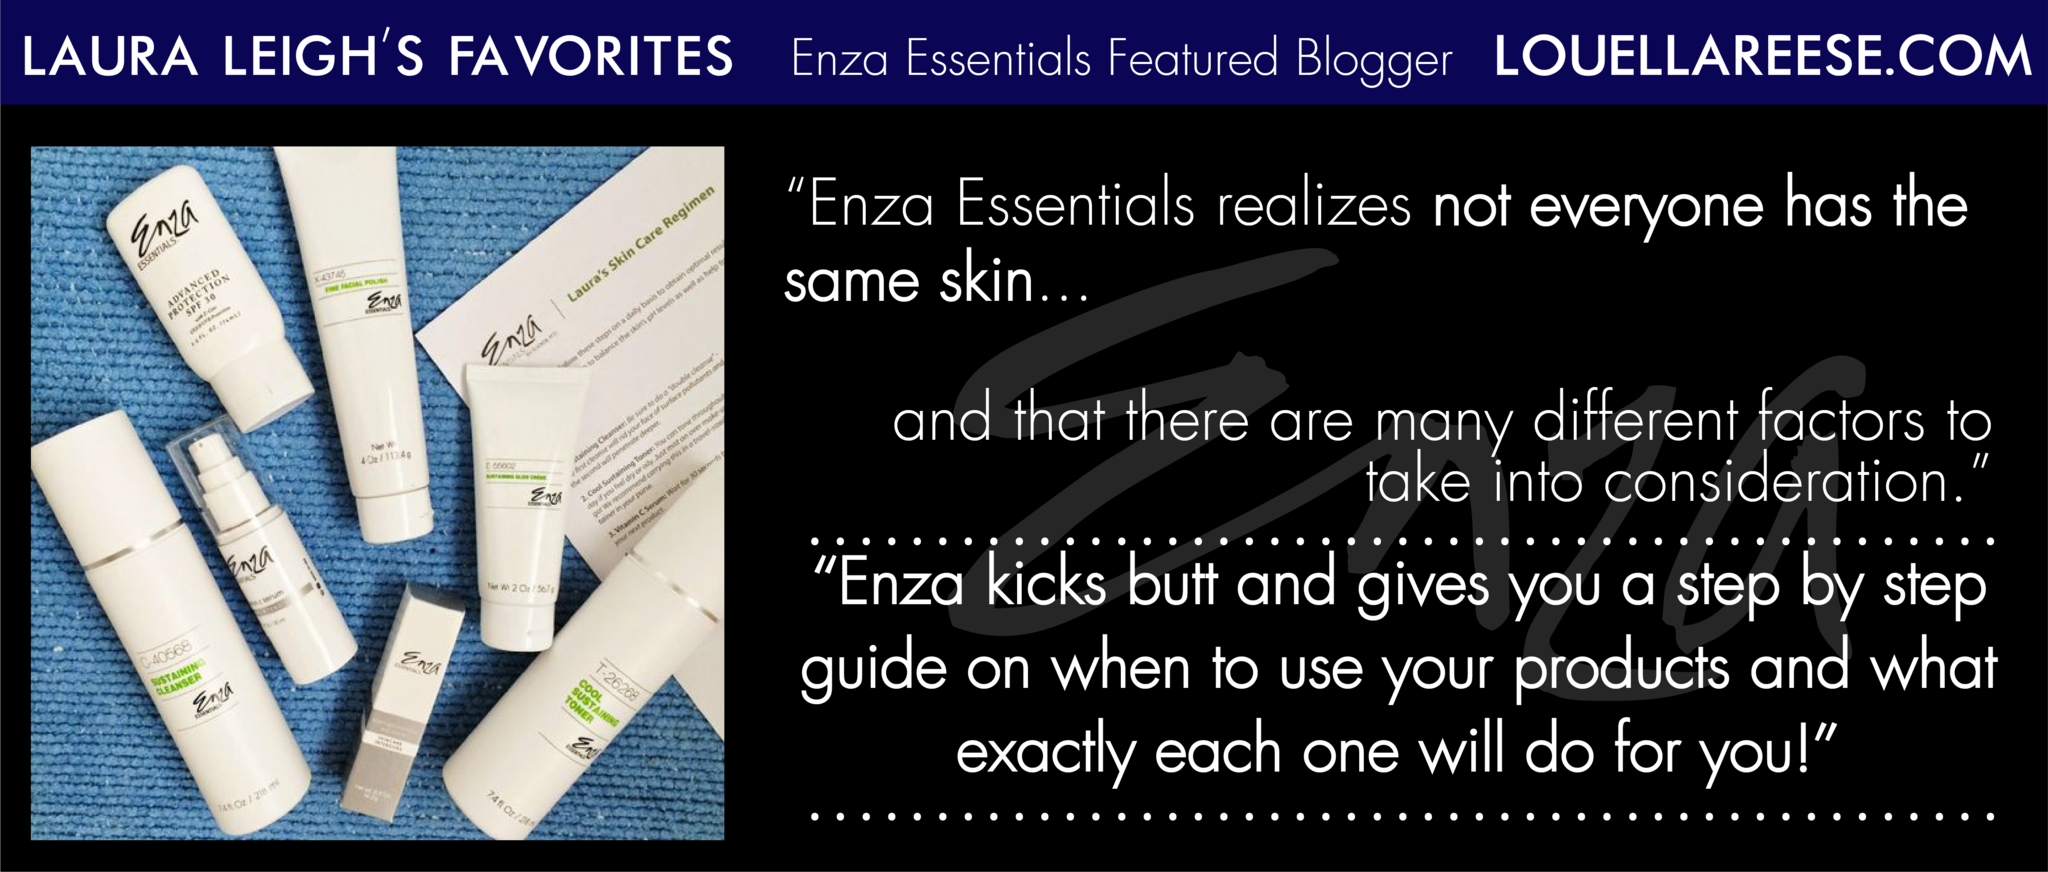 Loella Reese Laura Leigh's Enza Essentials Review